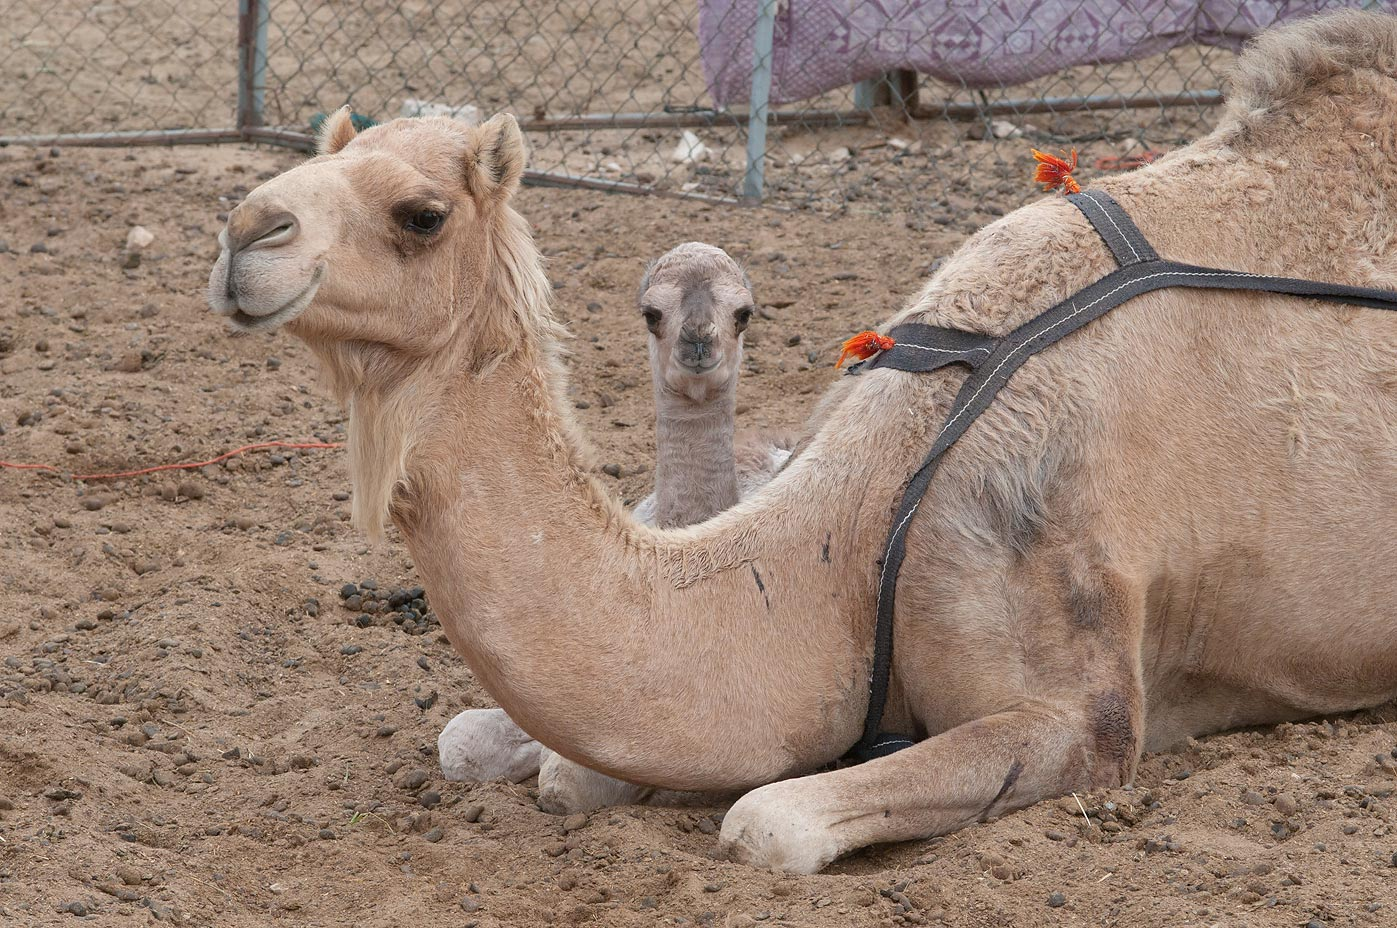 Resting mother with a child in Camel Market, Wholesale Markets area. Doha, Qatar